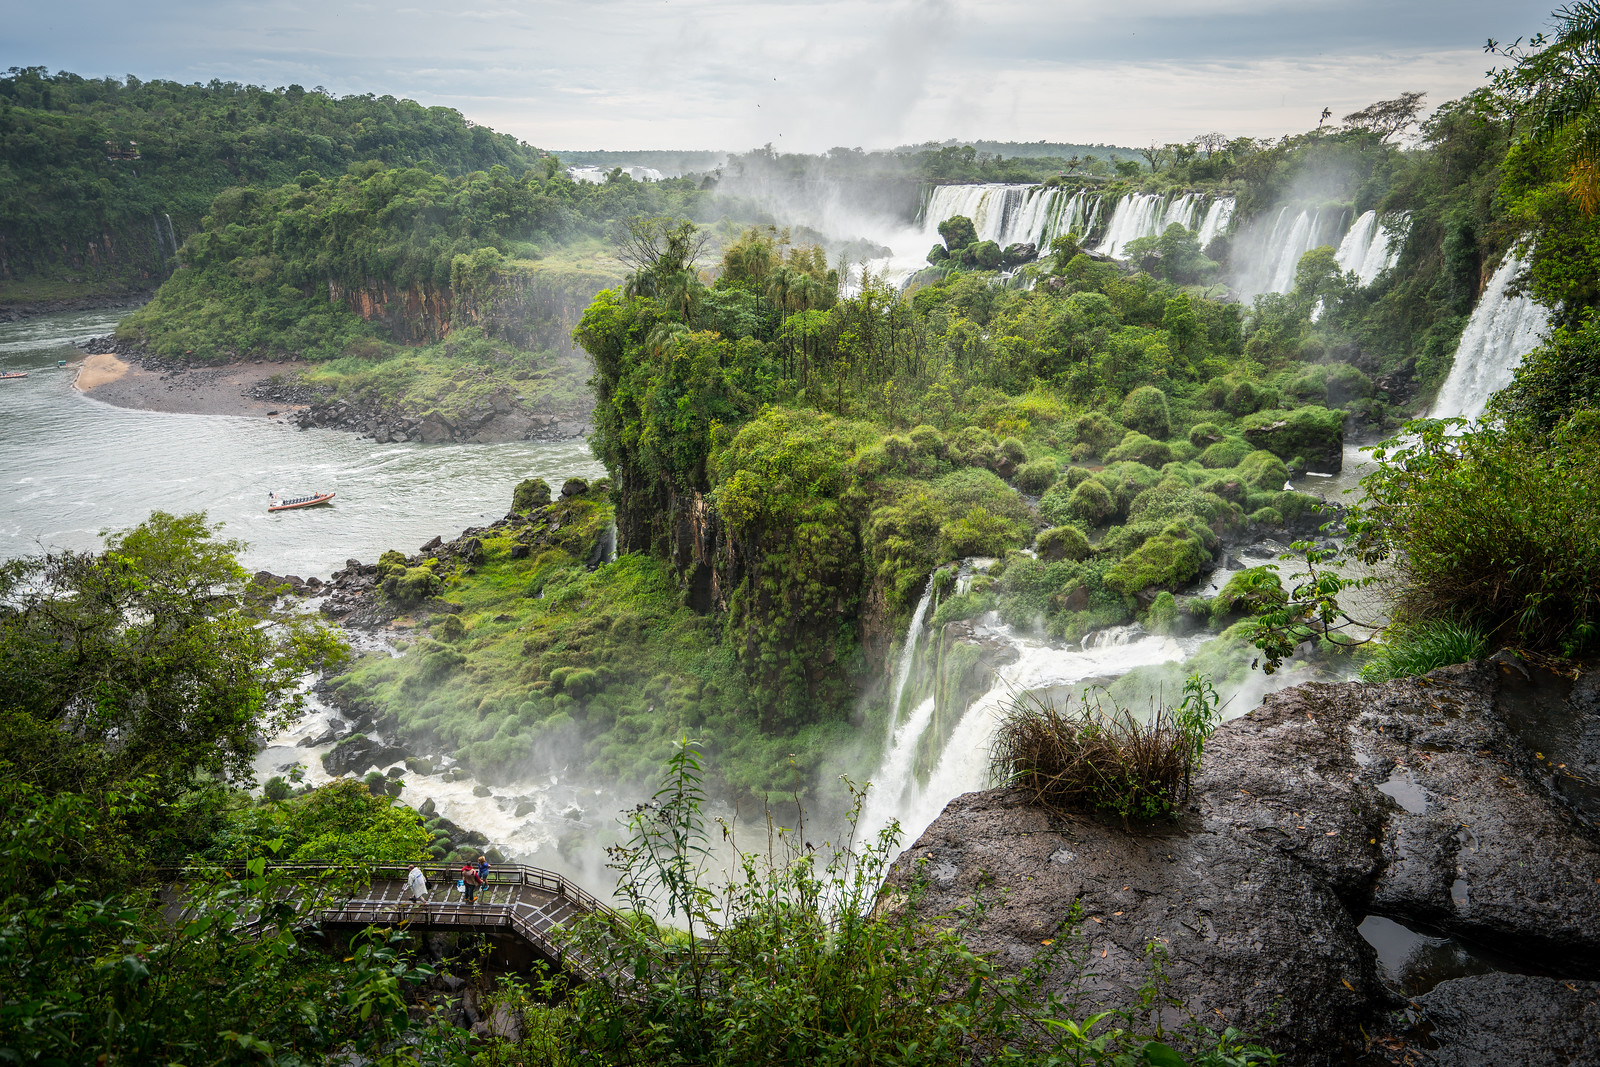 Exploring Iguazu National Park (Argentina)